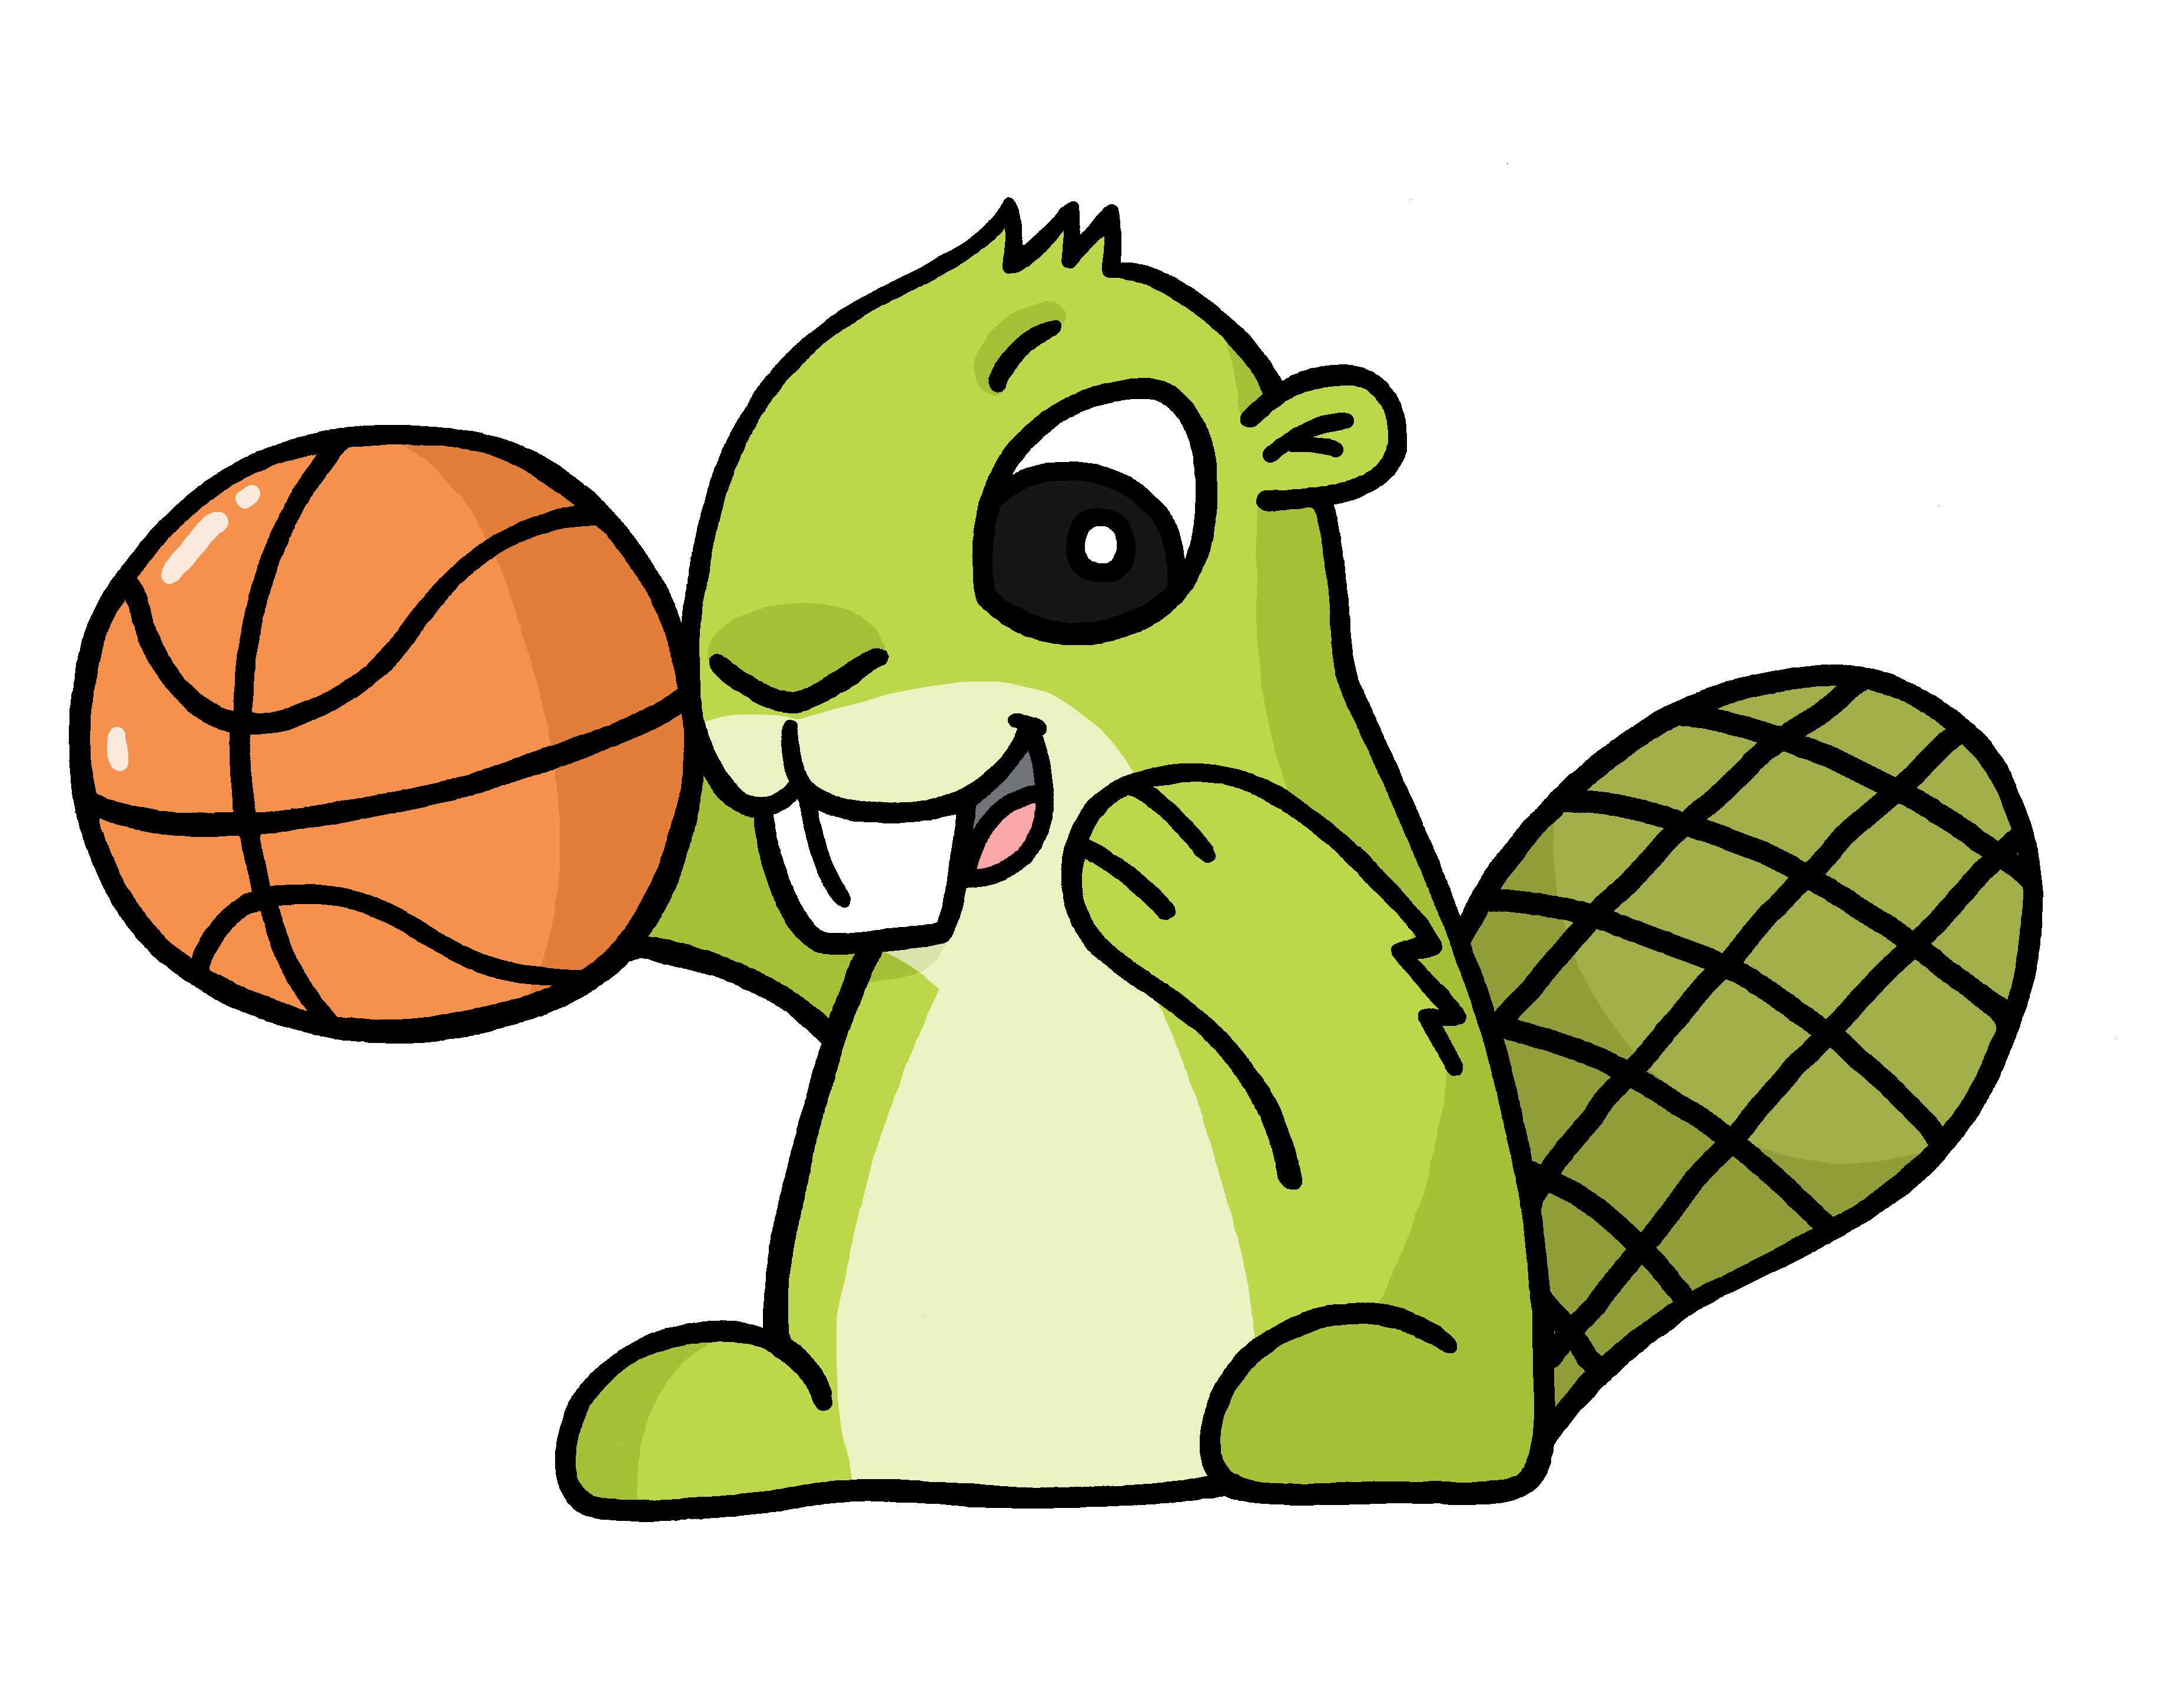 Animalm playing basketball clipart transparent Basketball Adsy transparent PNG - StickPNG transparent